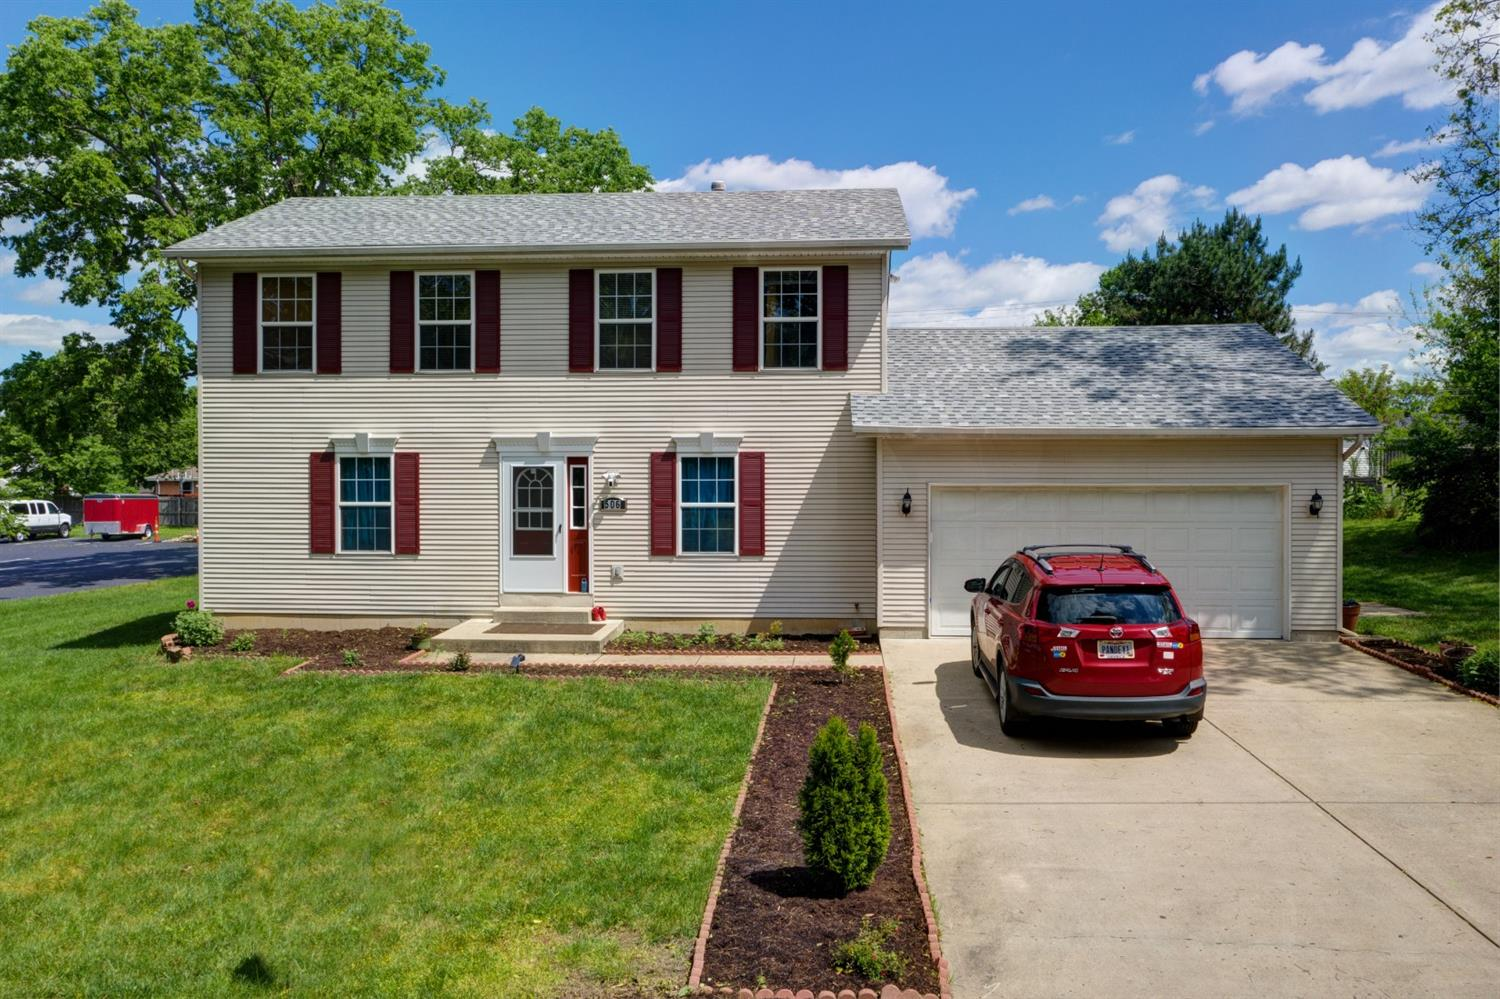 506 Hill Ave Lindenwald, OH